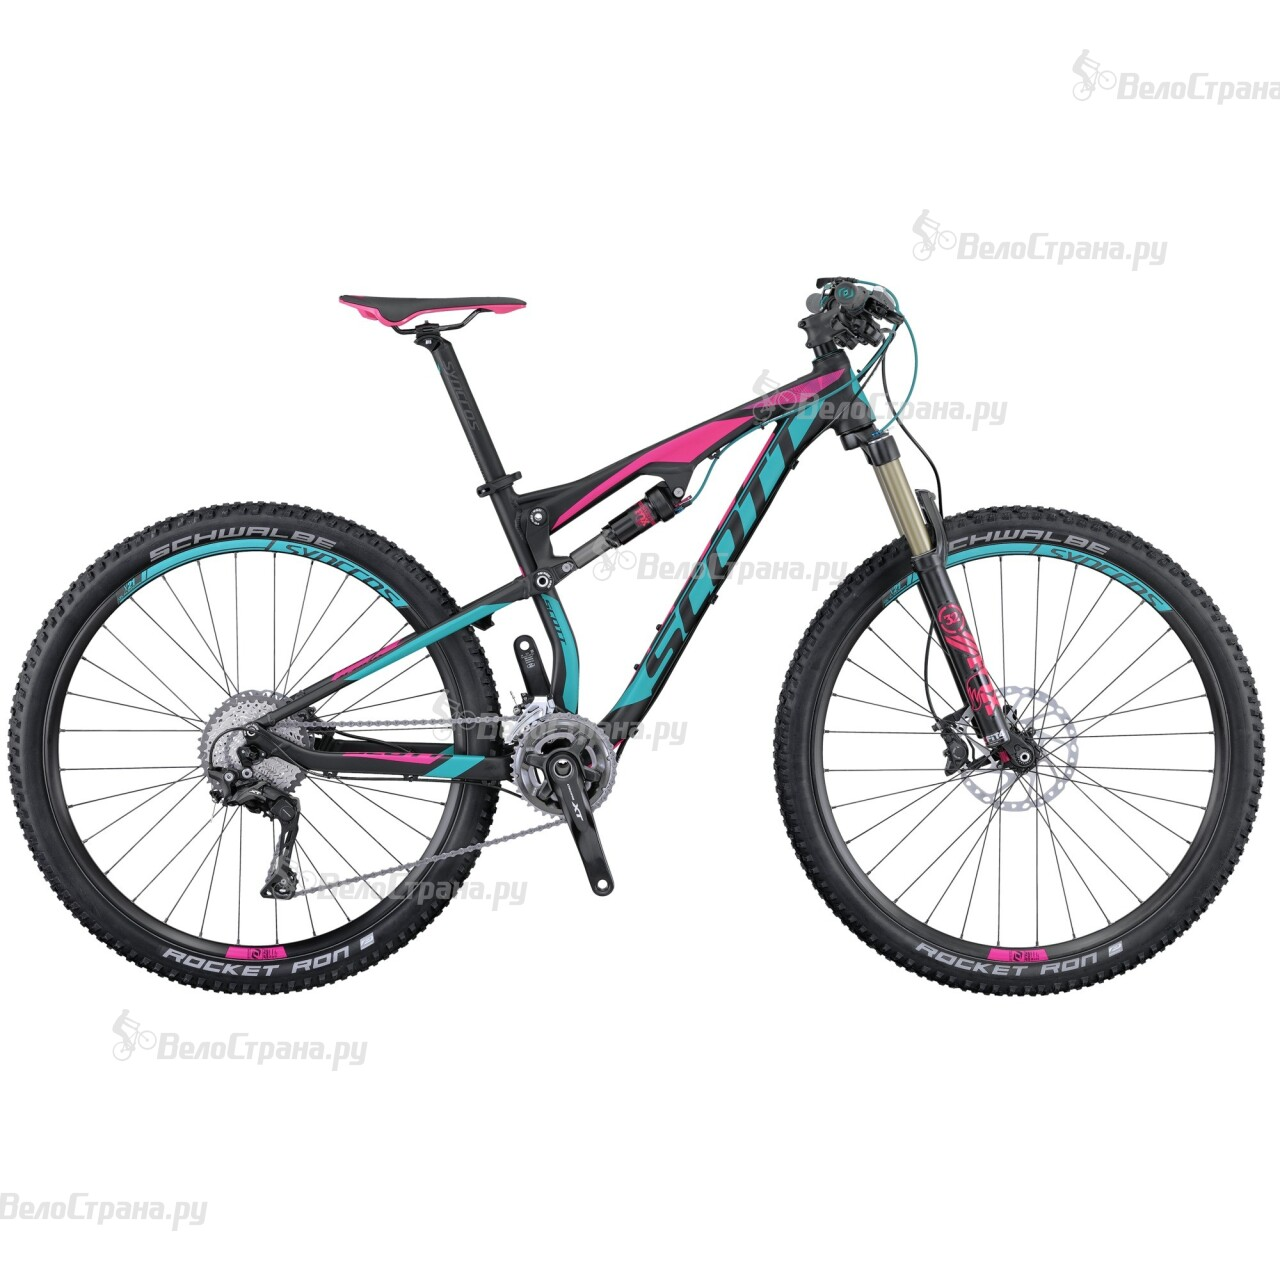 Велосипед Scott Contessa Spark 700 (2016)  велосипед scott contessa spark 700 rc 2016